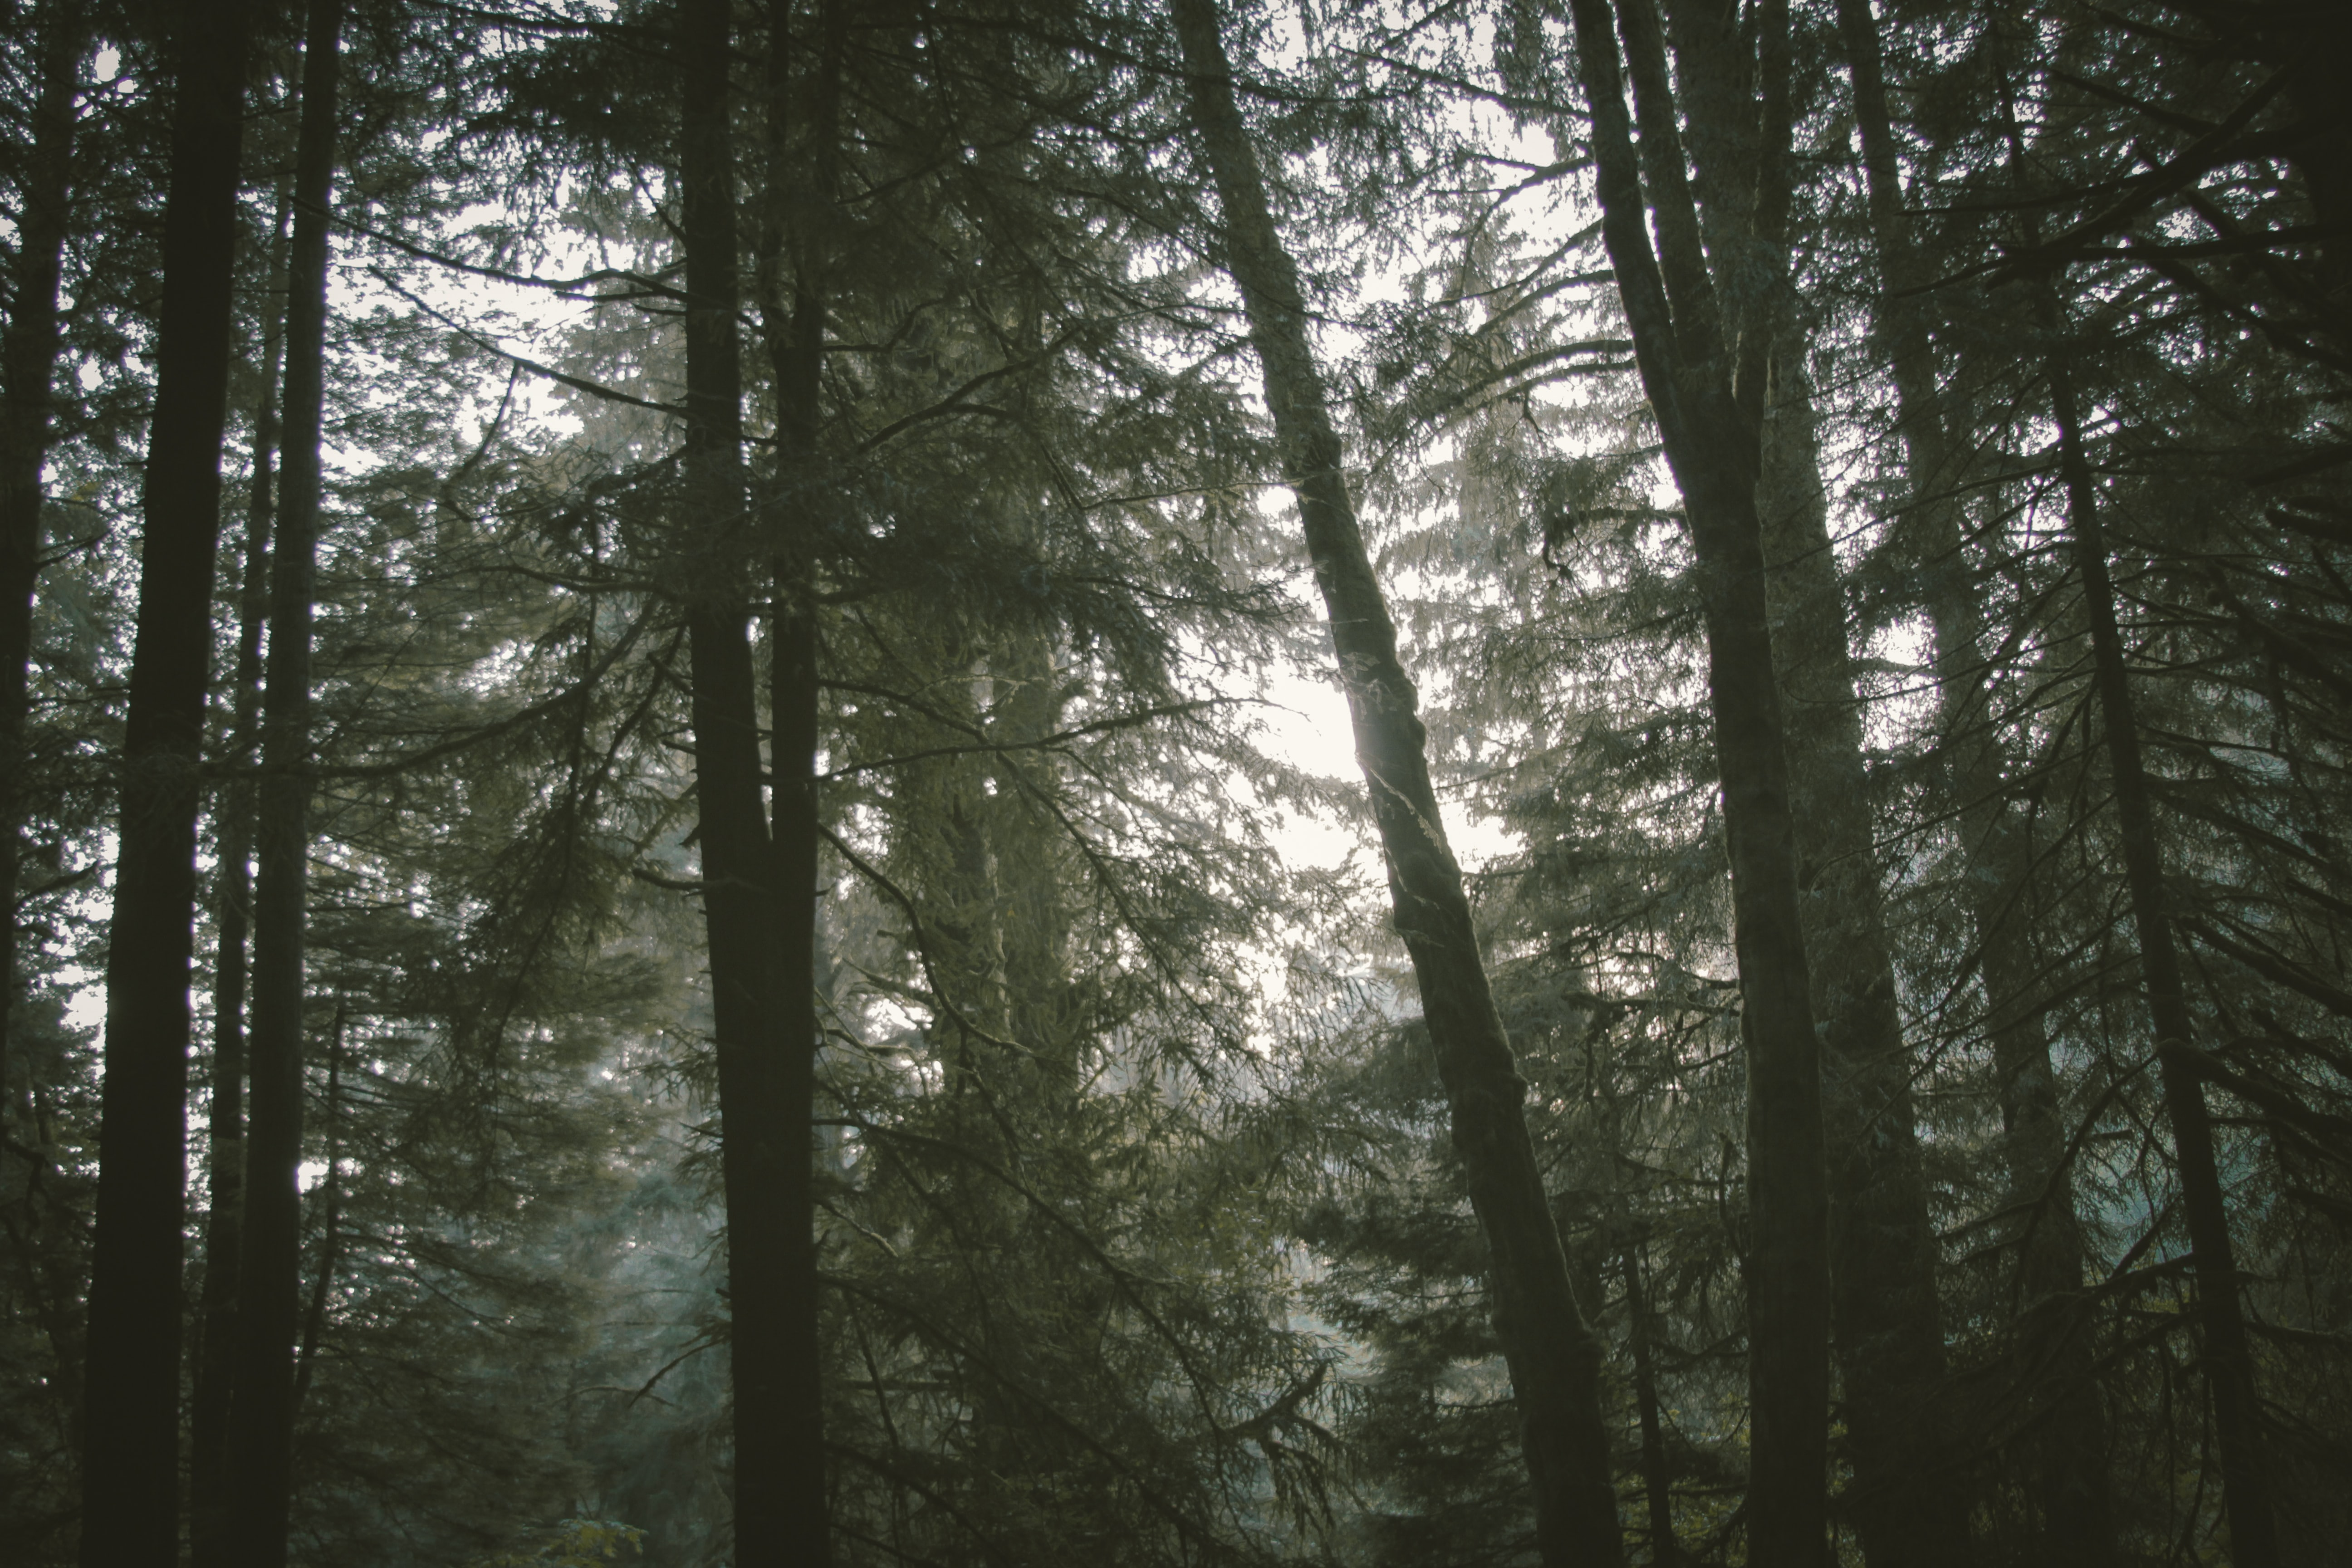 Pale white sky behind trees in a dense forest